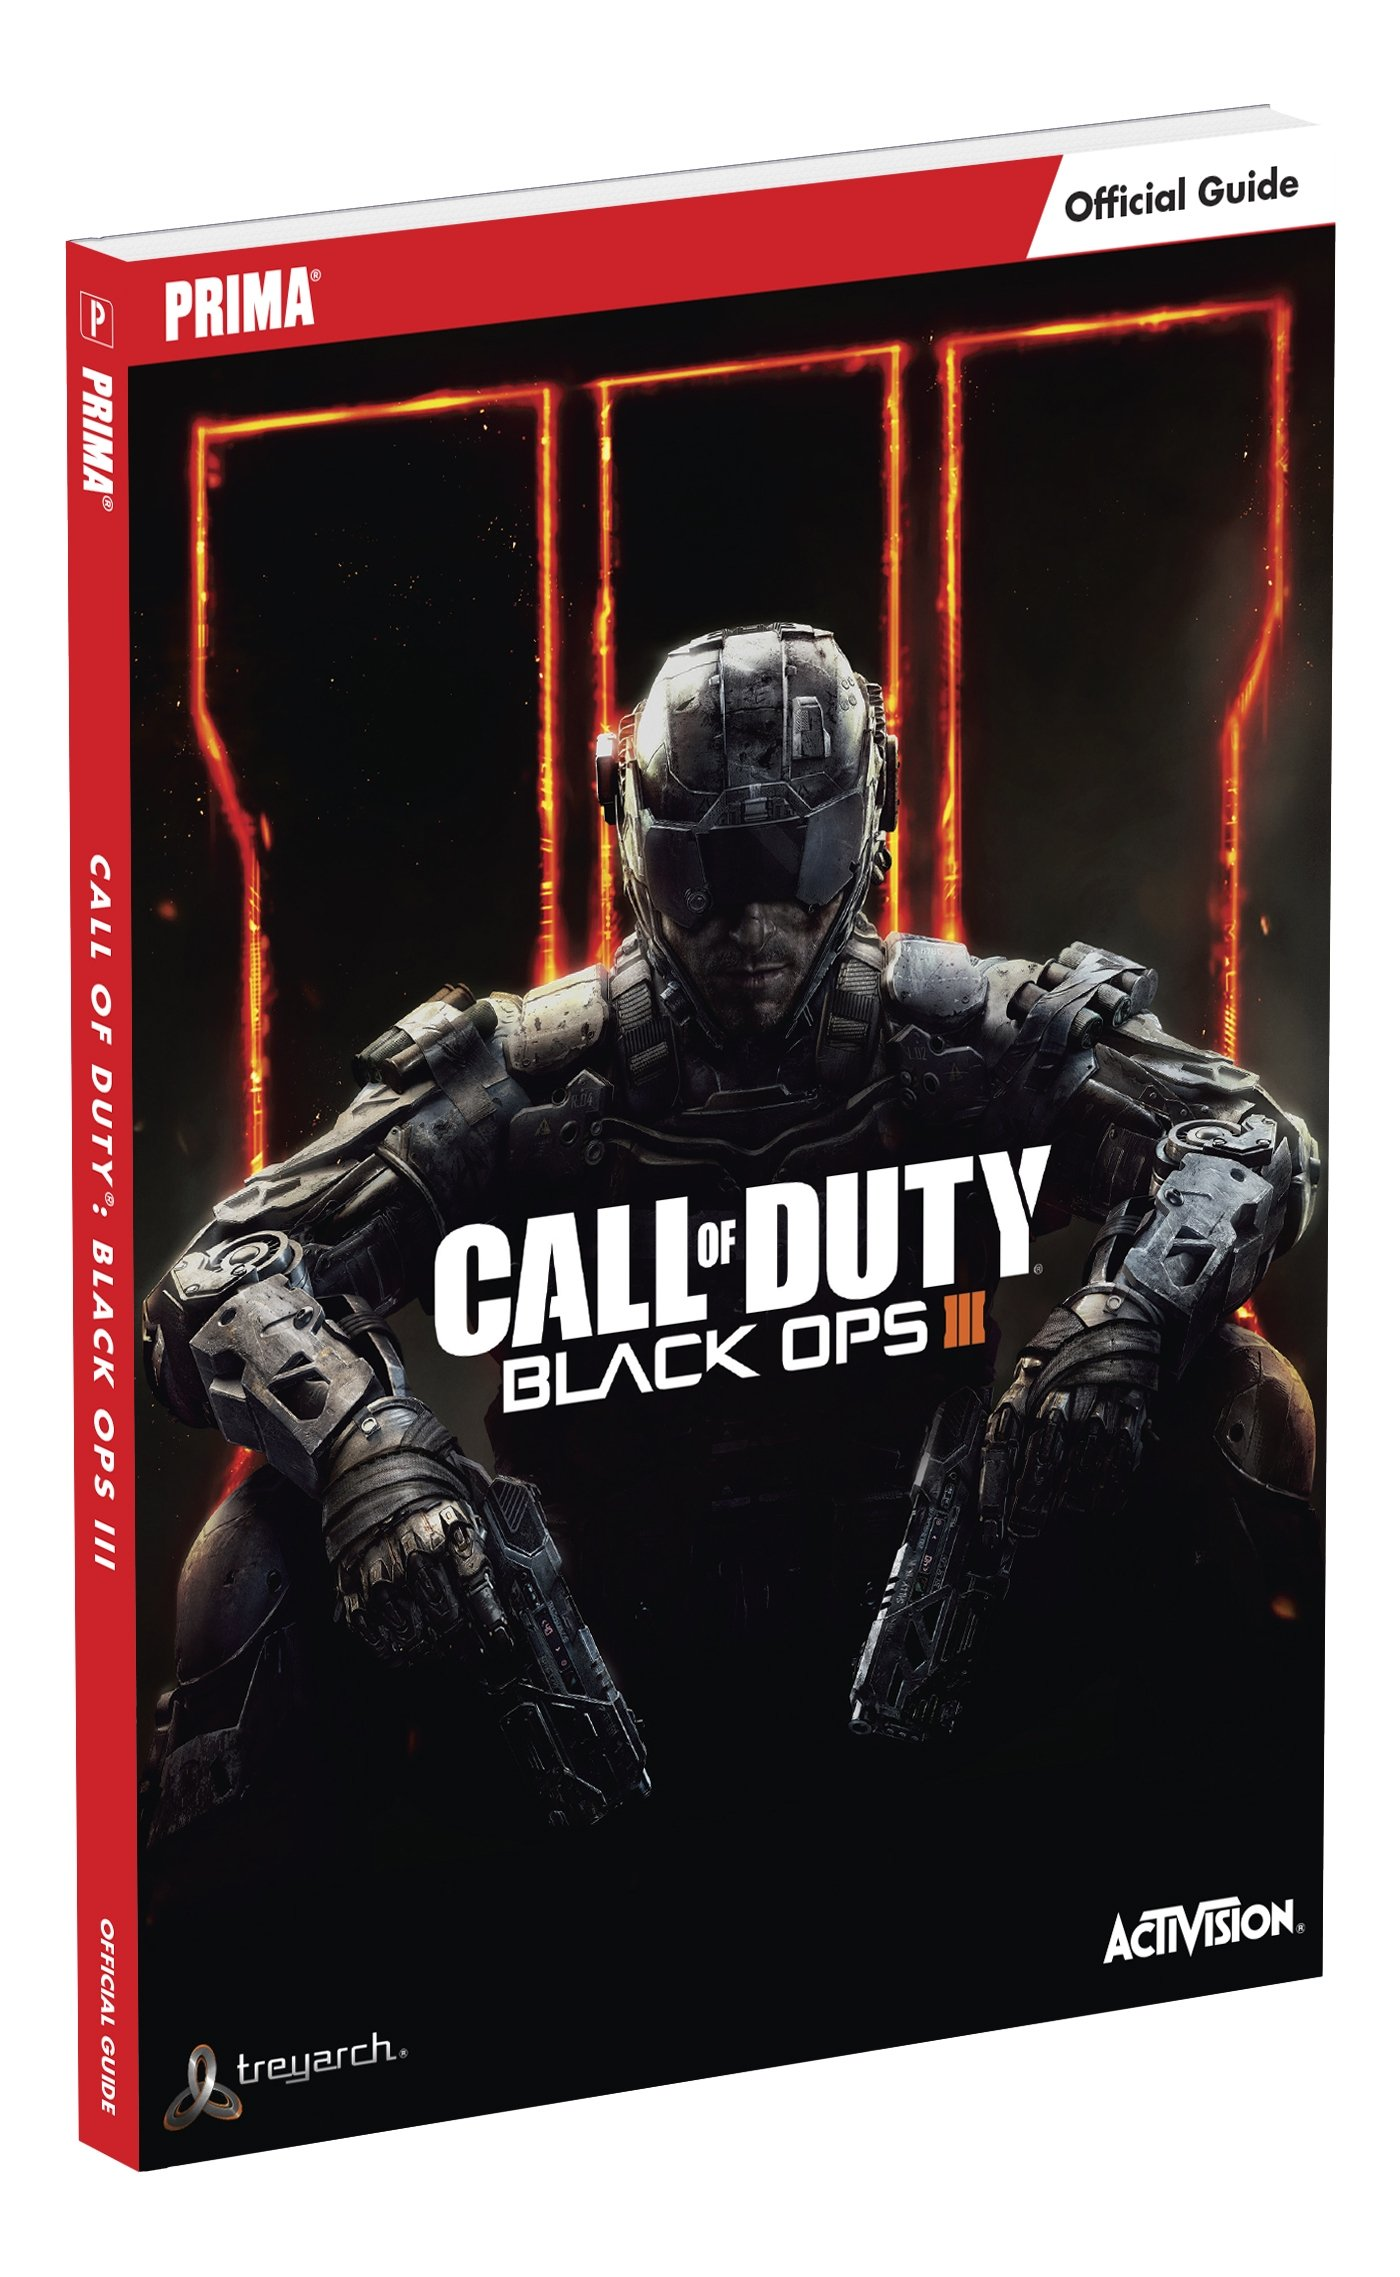 call of duty black ops iii standard edition guide prima games rh amazon com black ops 3 guide black ops 3 guide zombie